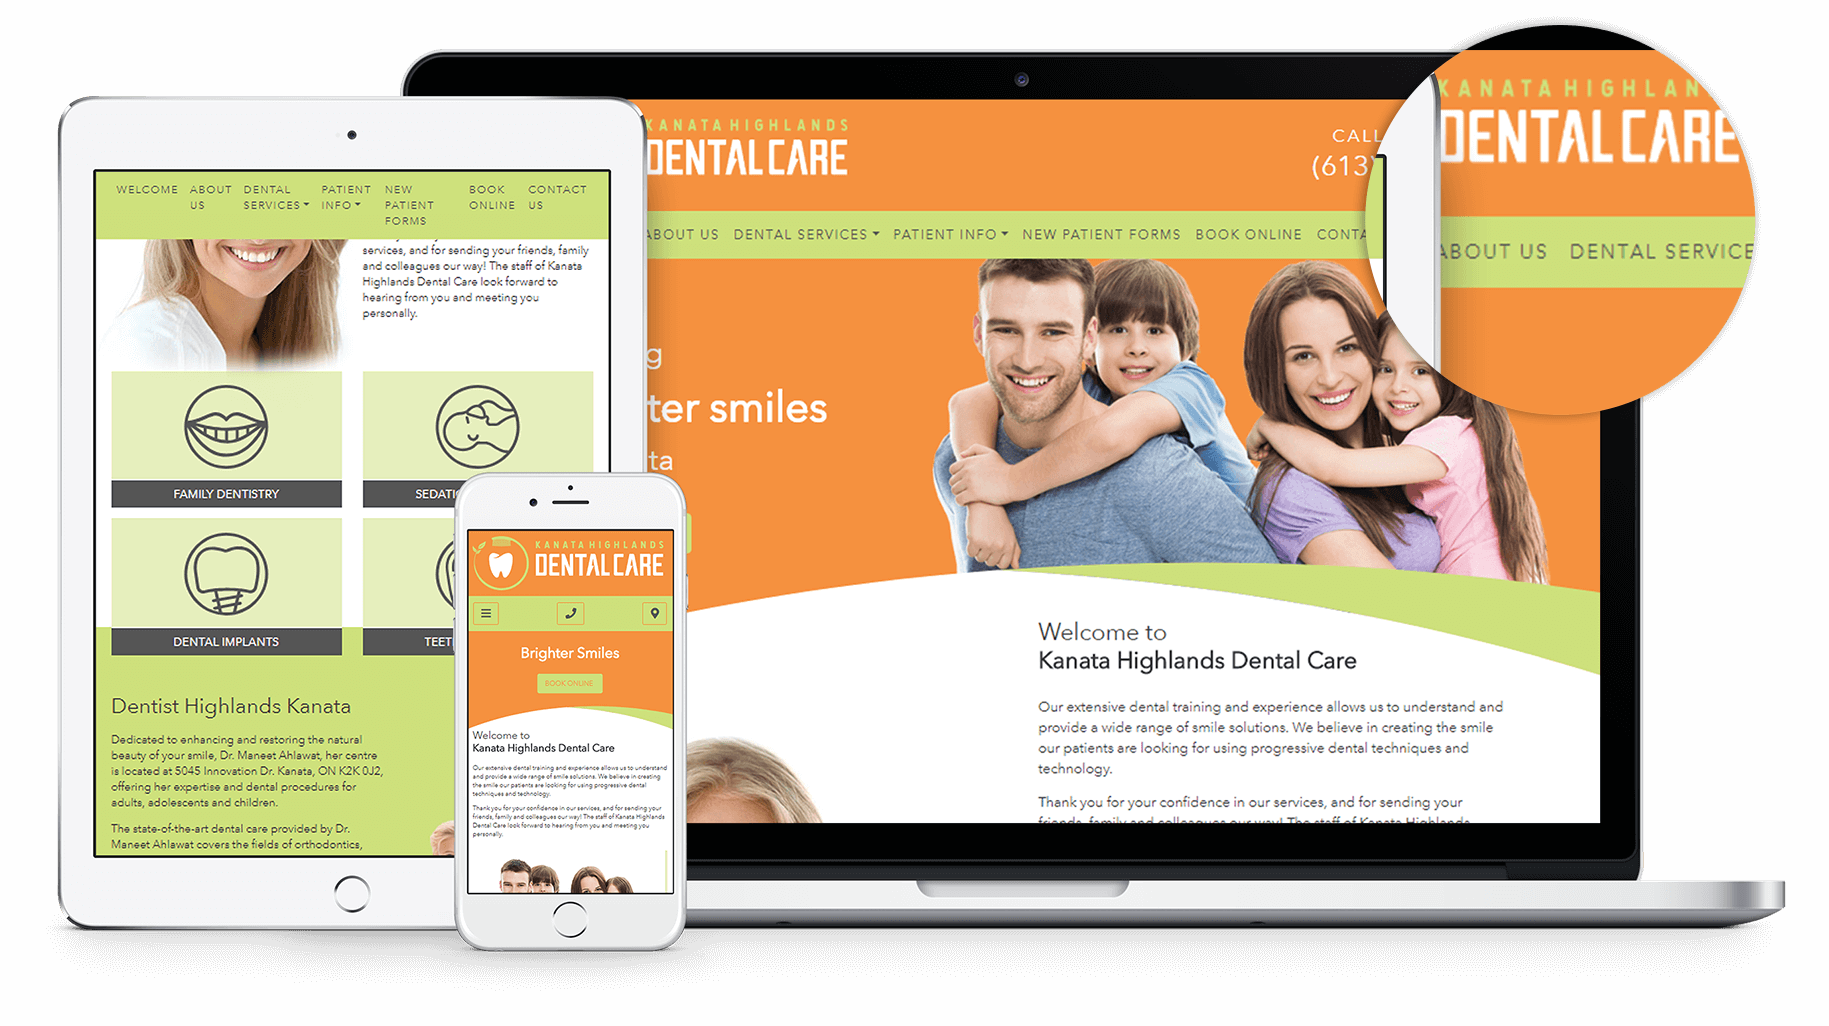 New website design for Kanata Highlands Dental Care